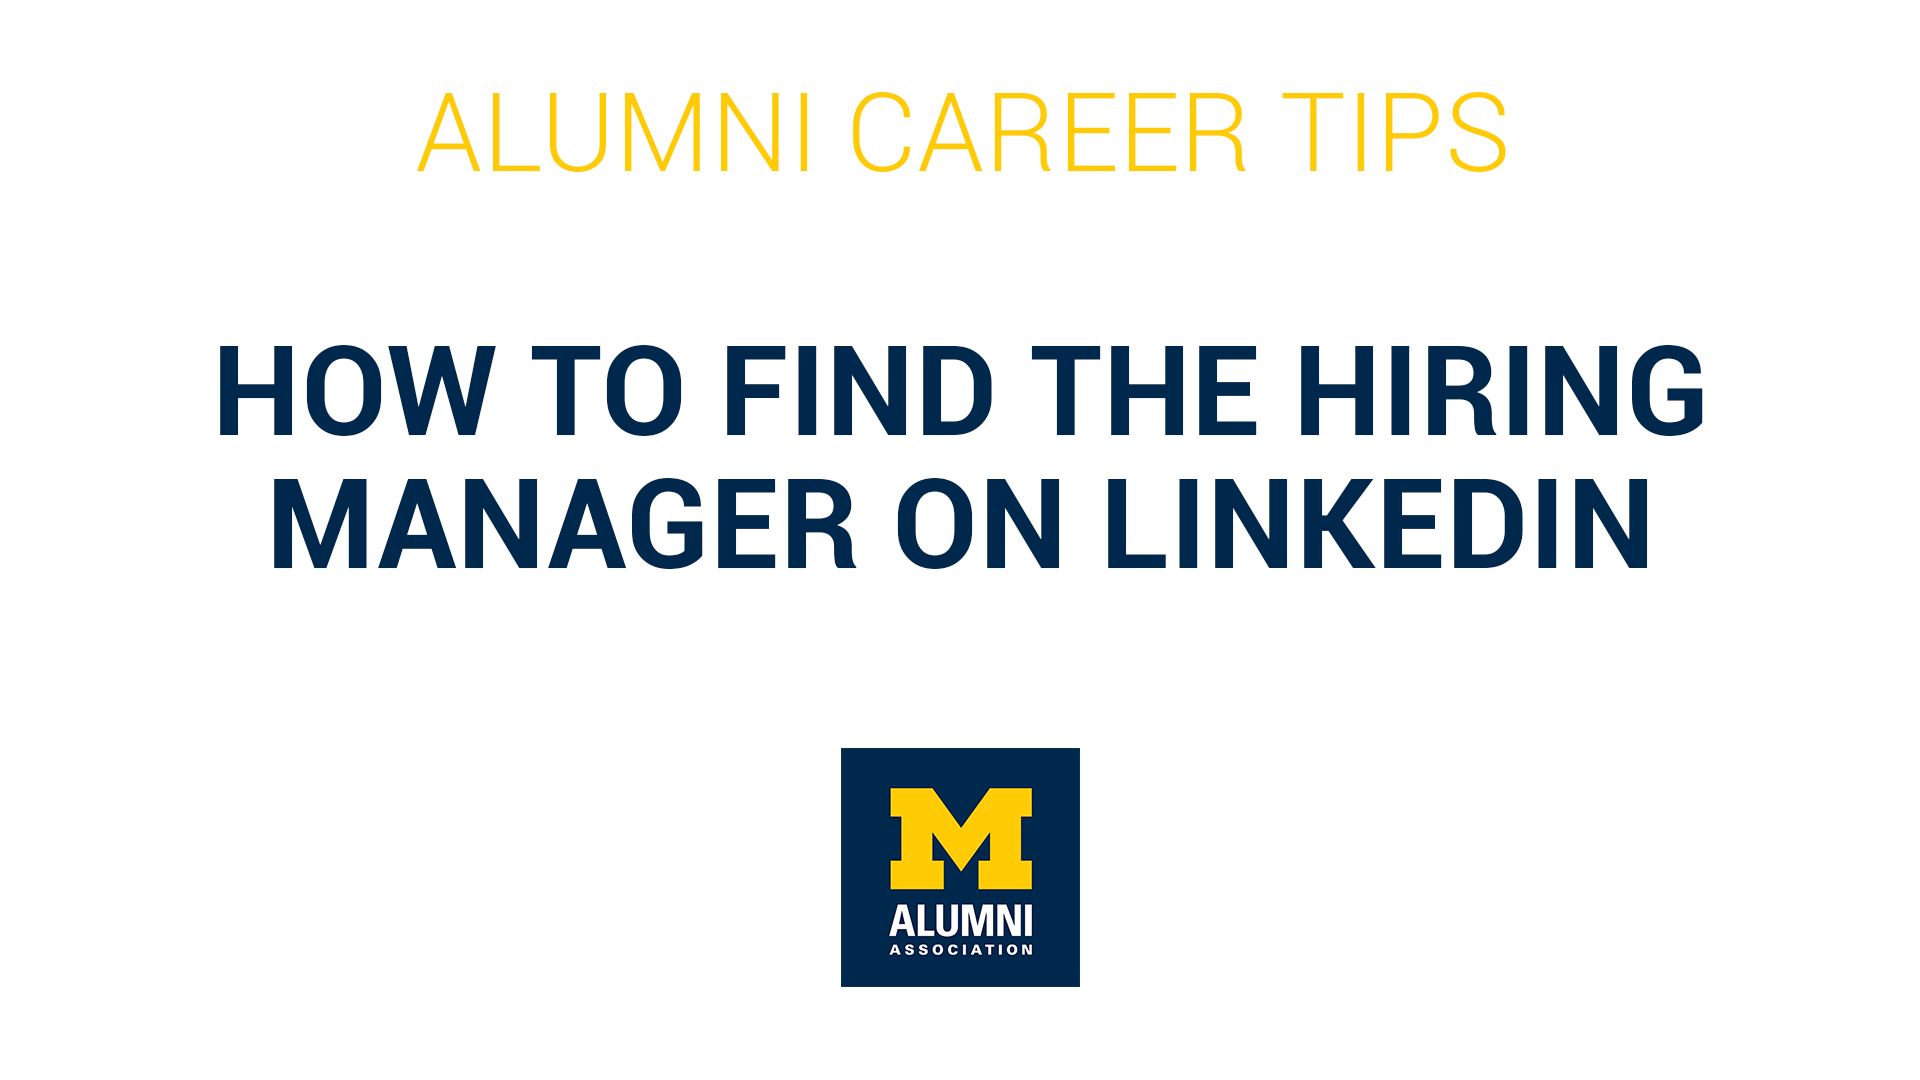 Finding the Hiring Manager on LinkedIn